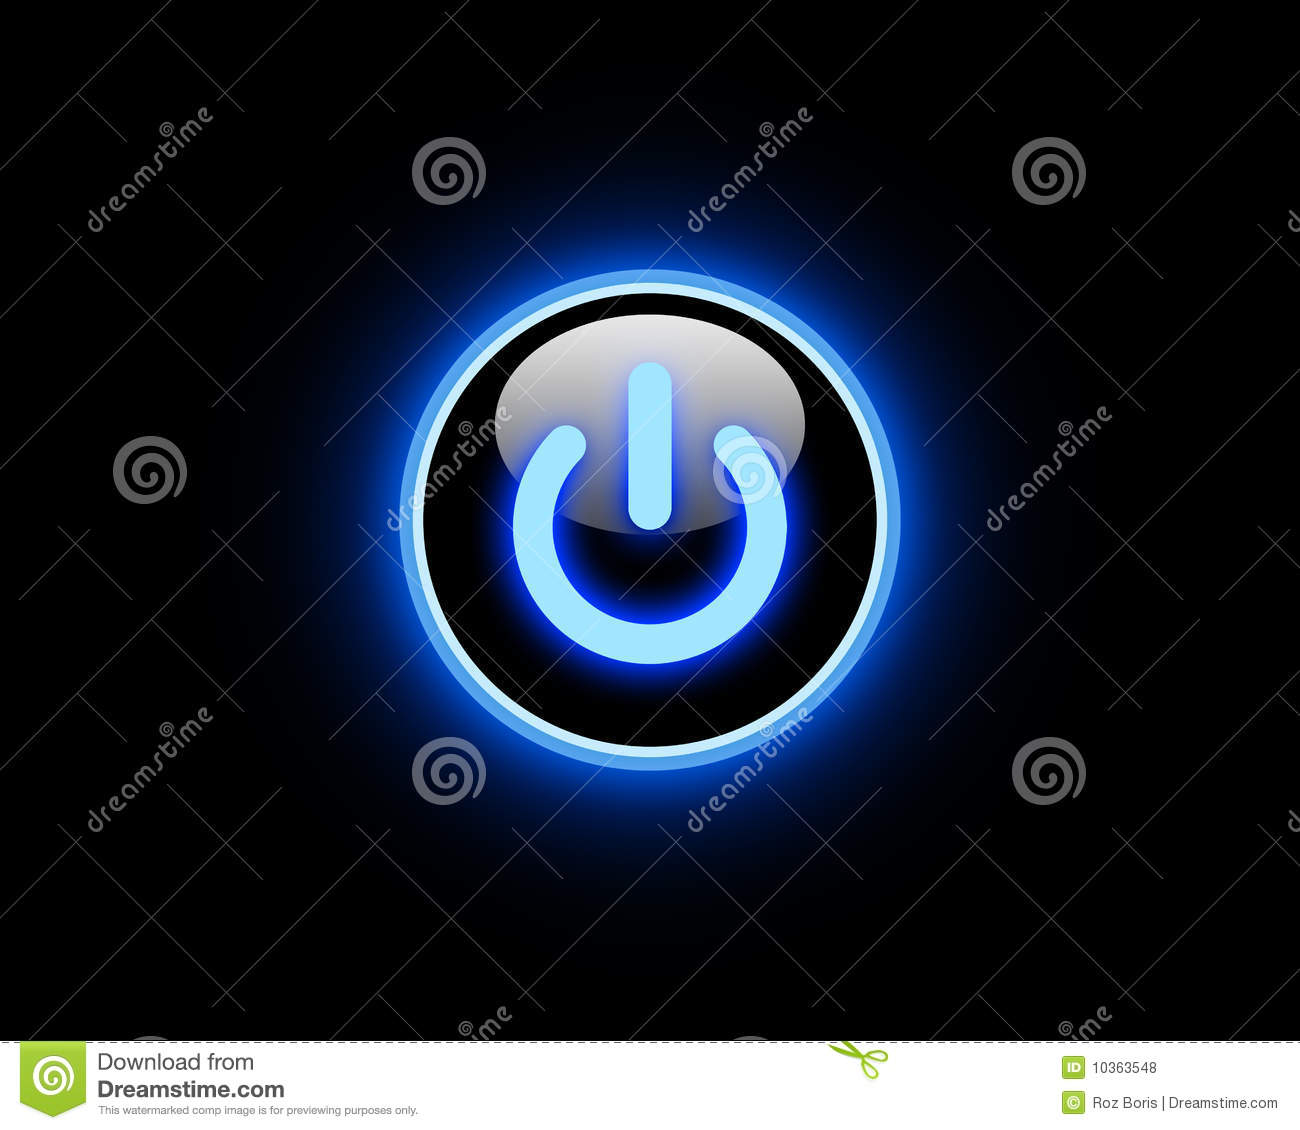 blue-power-button-10363548.jpg